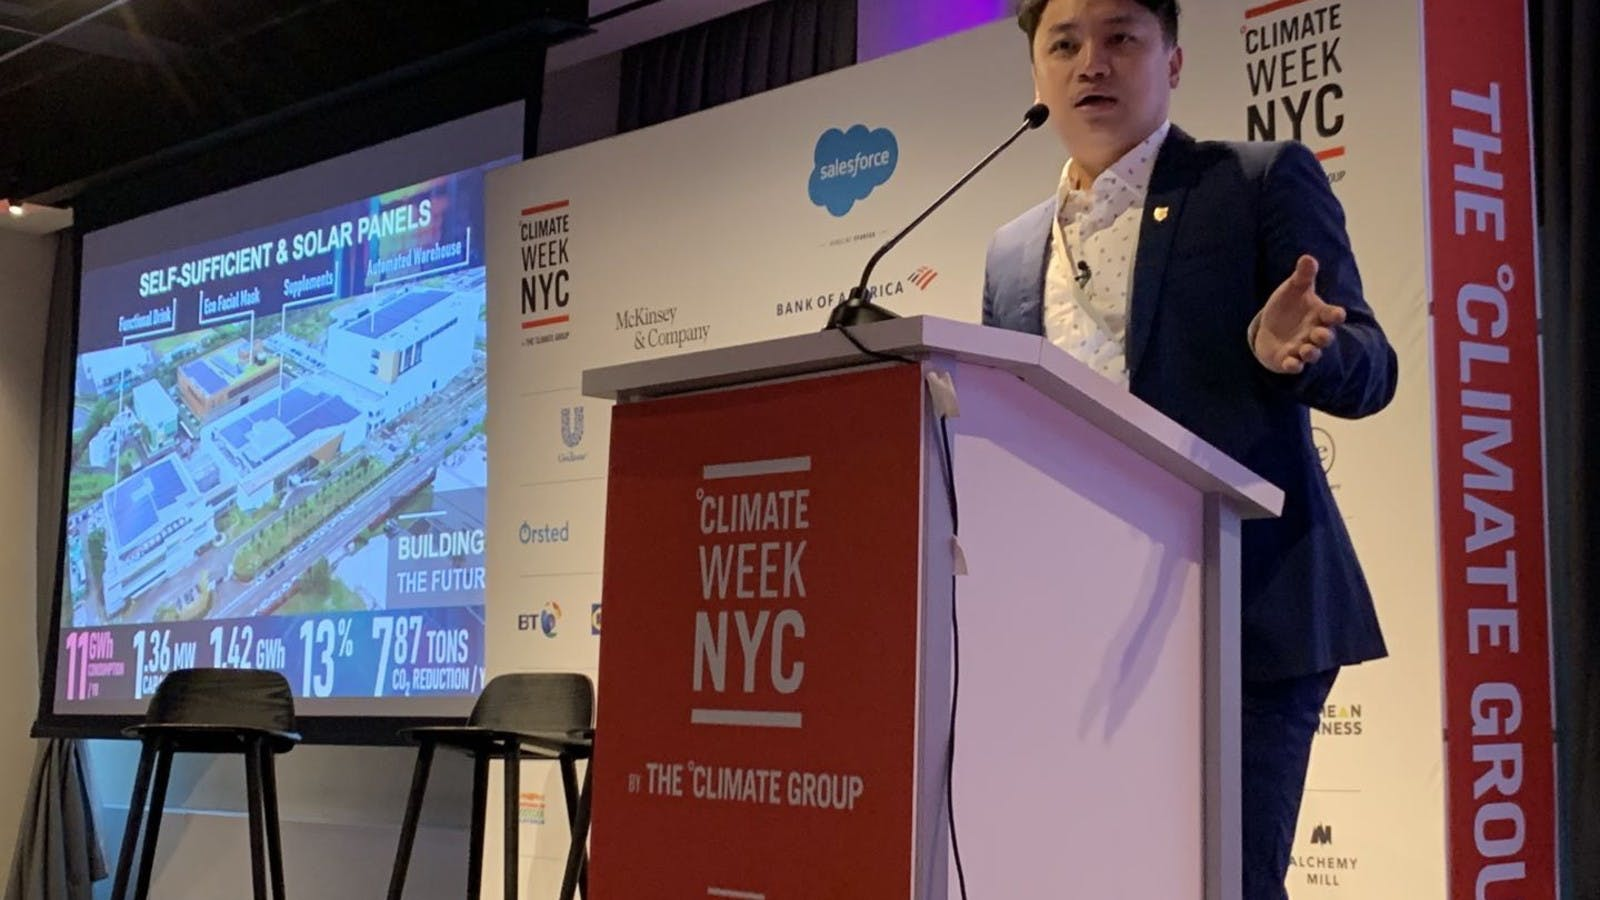 TCI was invited to share the experience in developing the sustainable operation model at Climate Week NYC